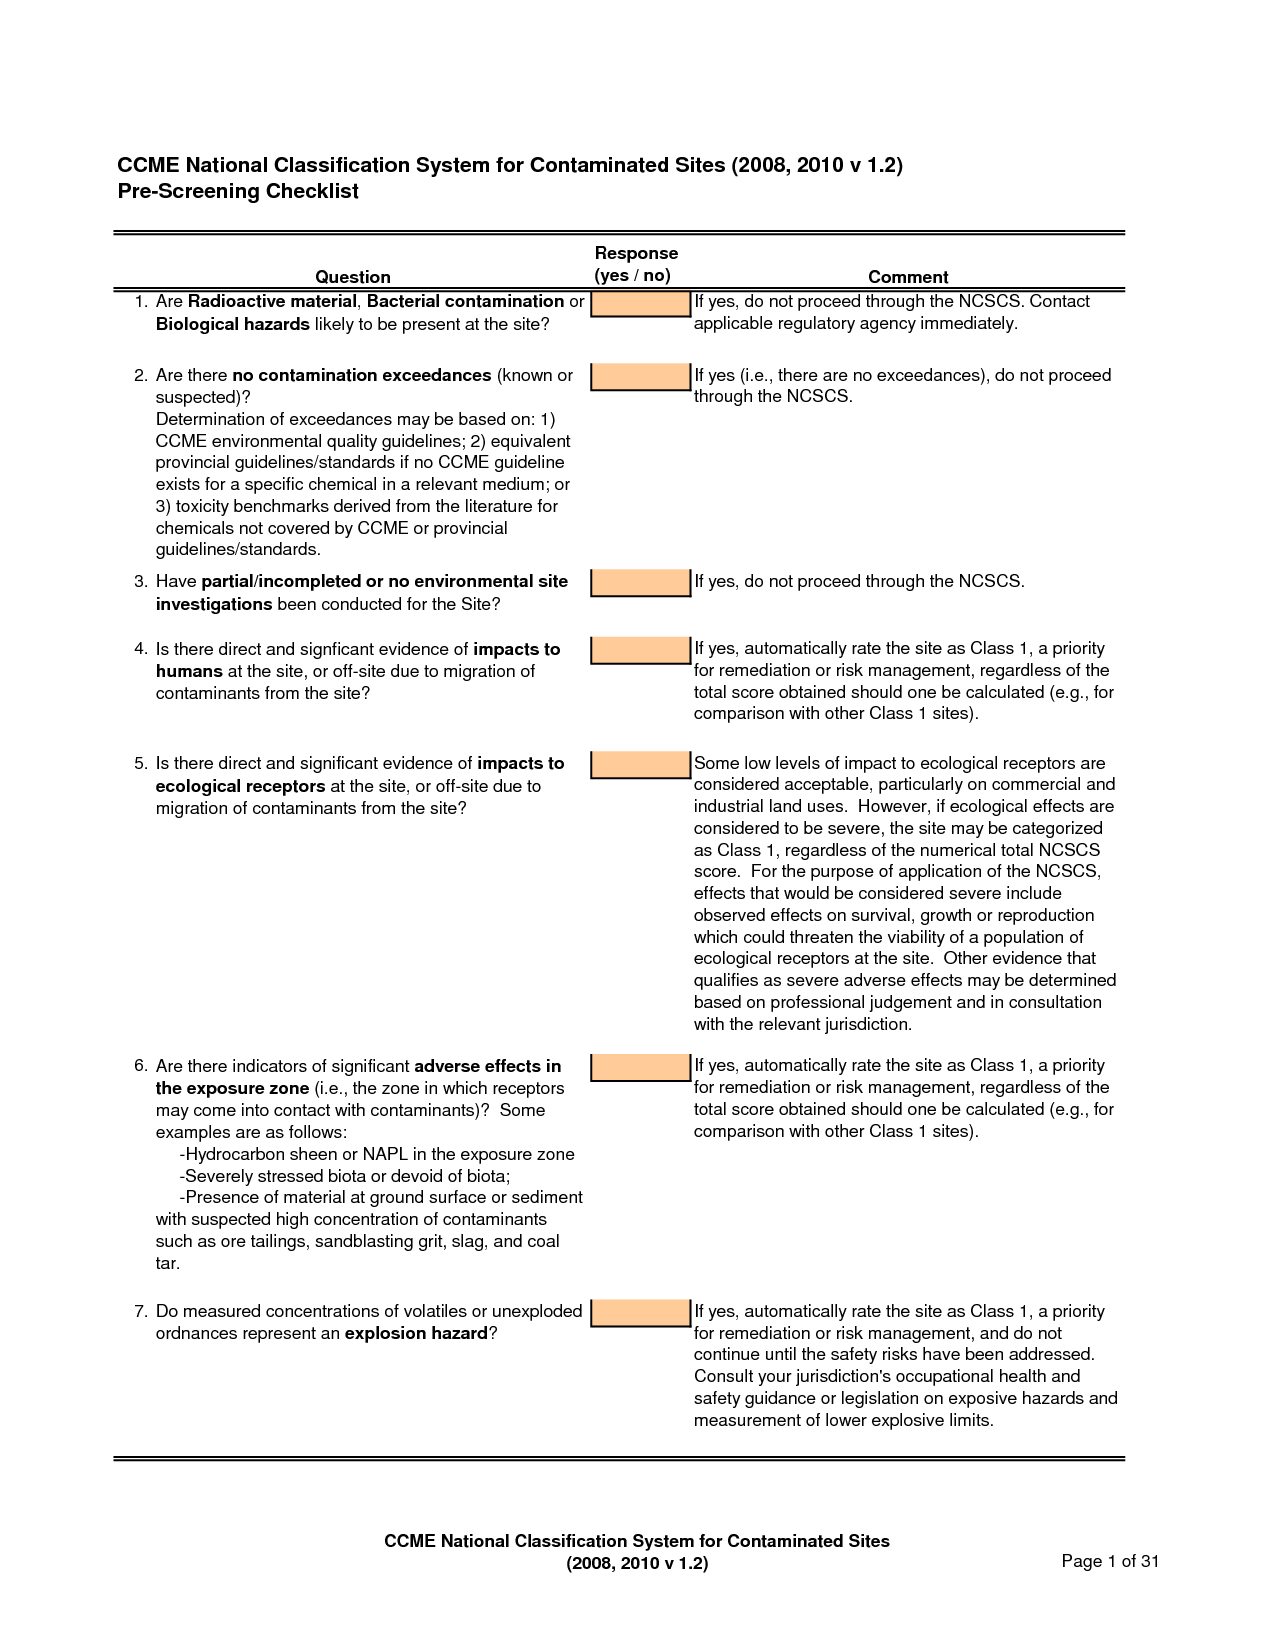 Classification Worksheet Answer Key Biology Corner